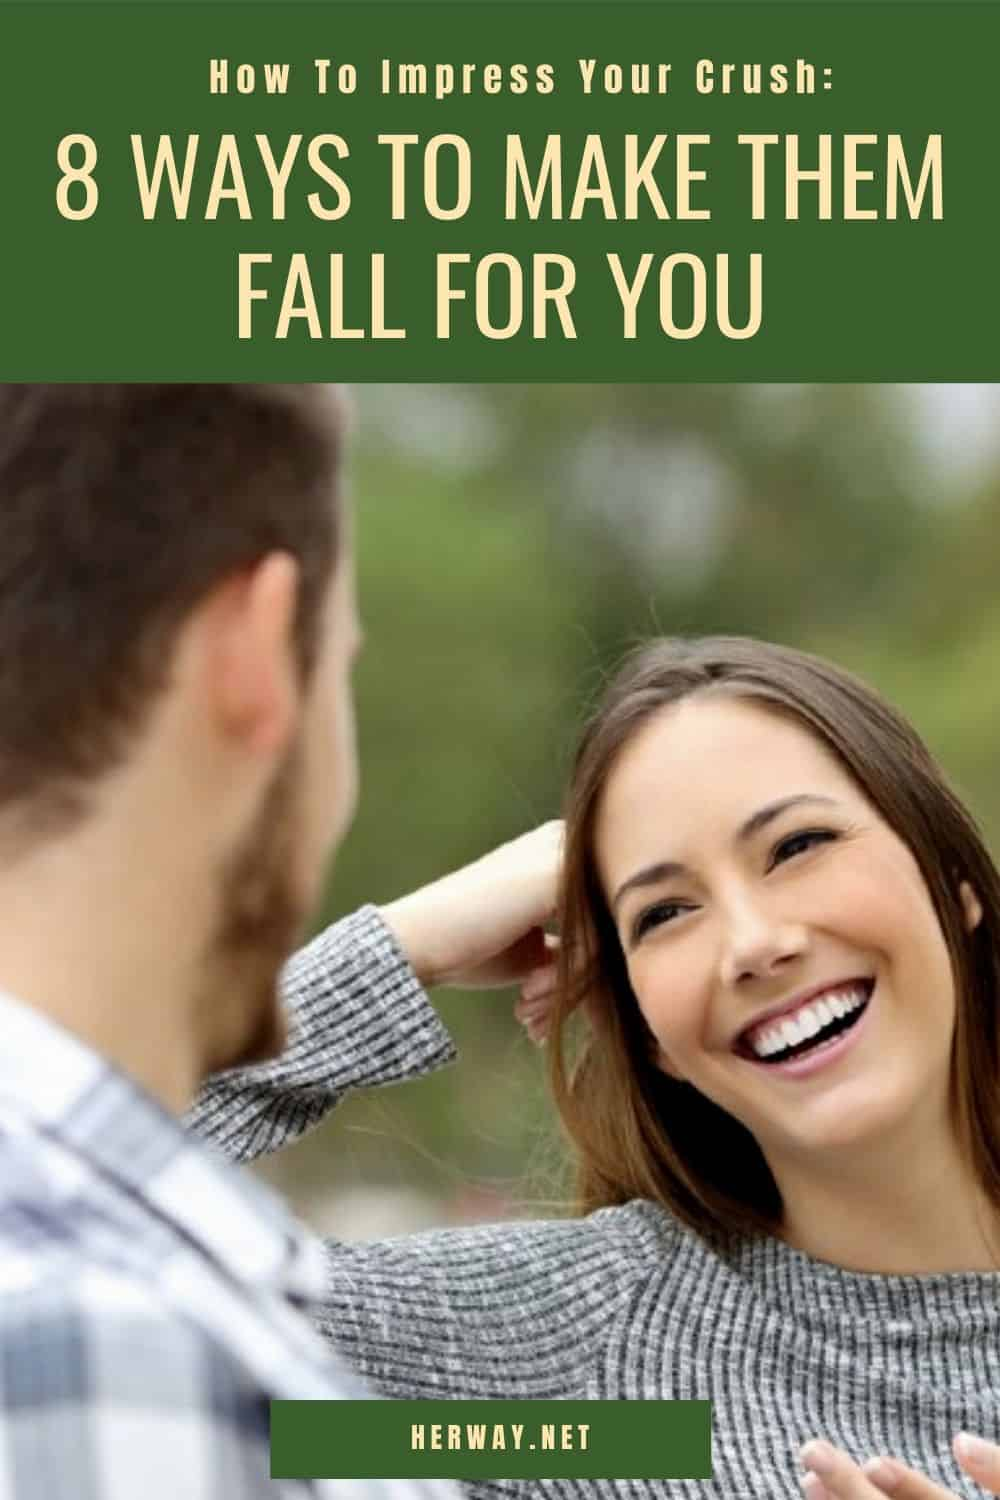 How To Impress Your Crush: 8 Ways To Make Them Fall For You